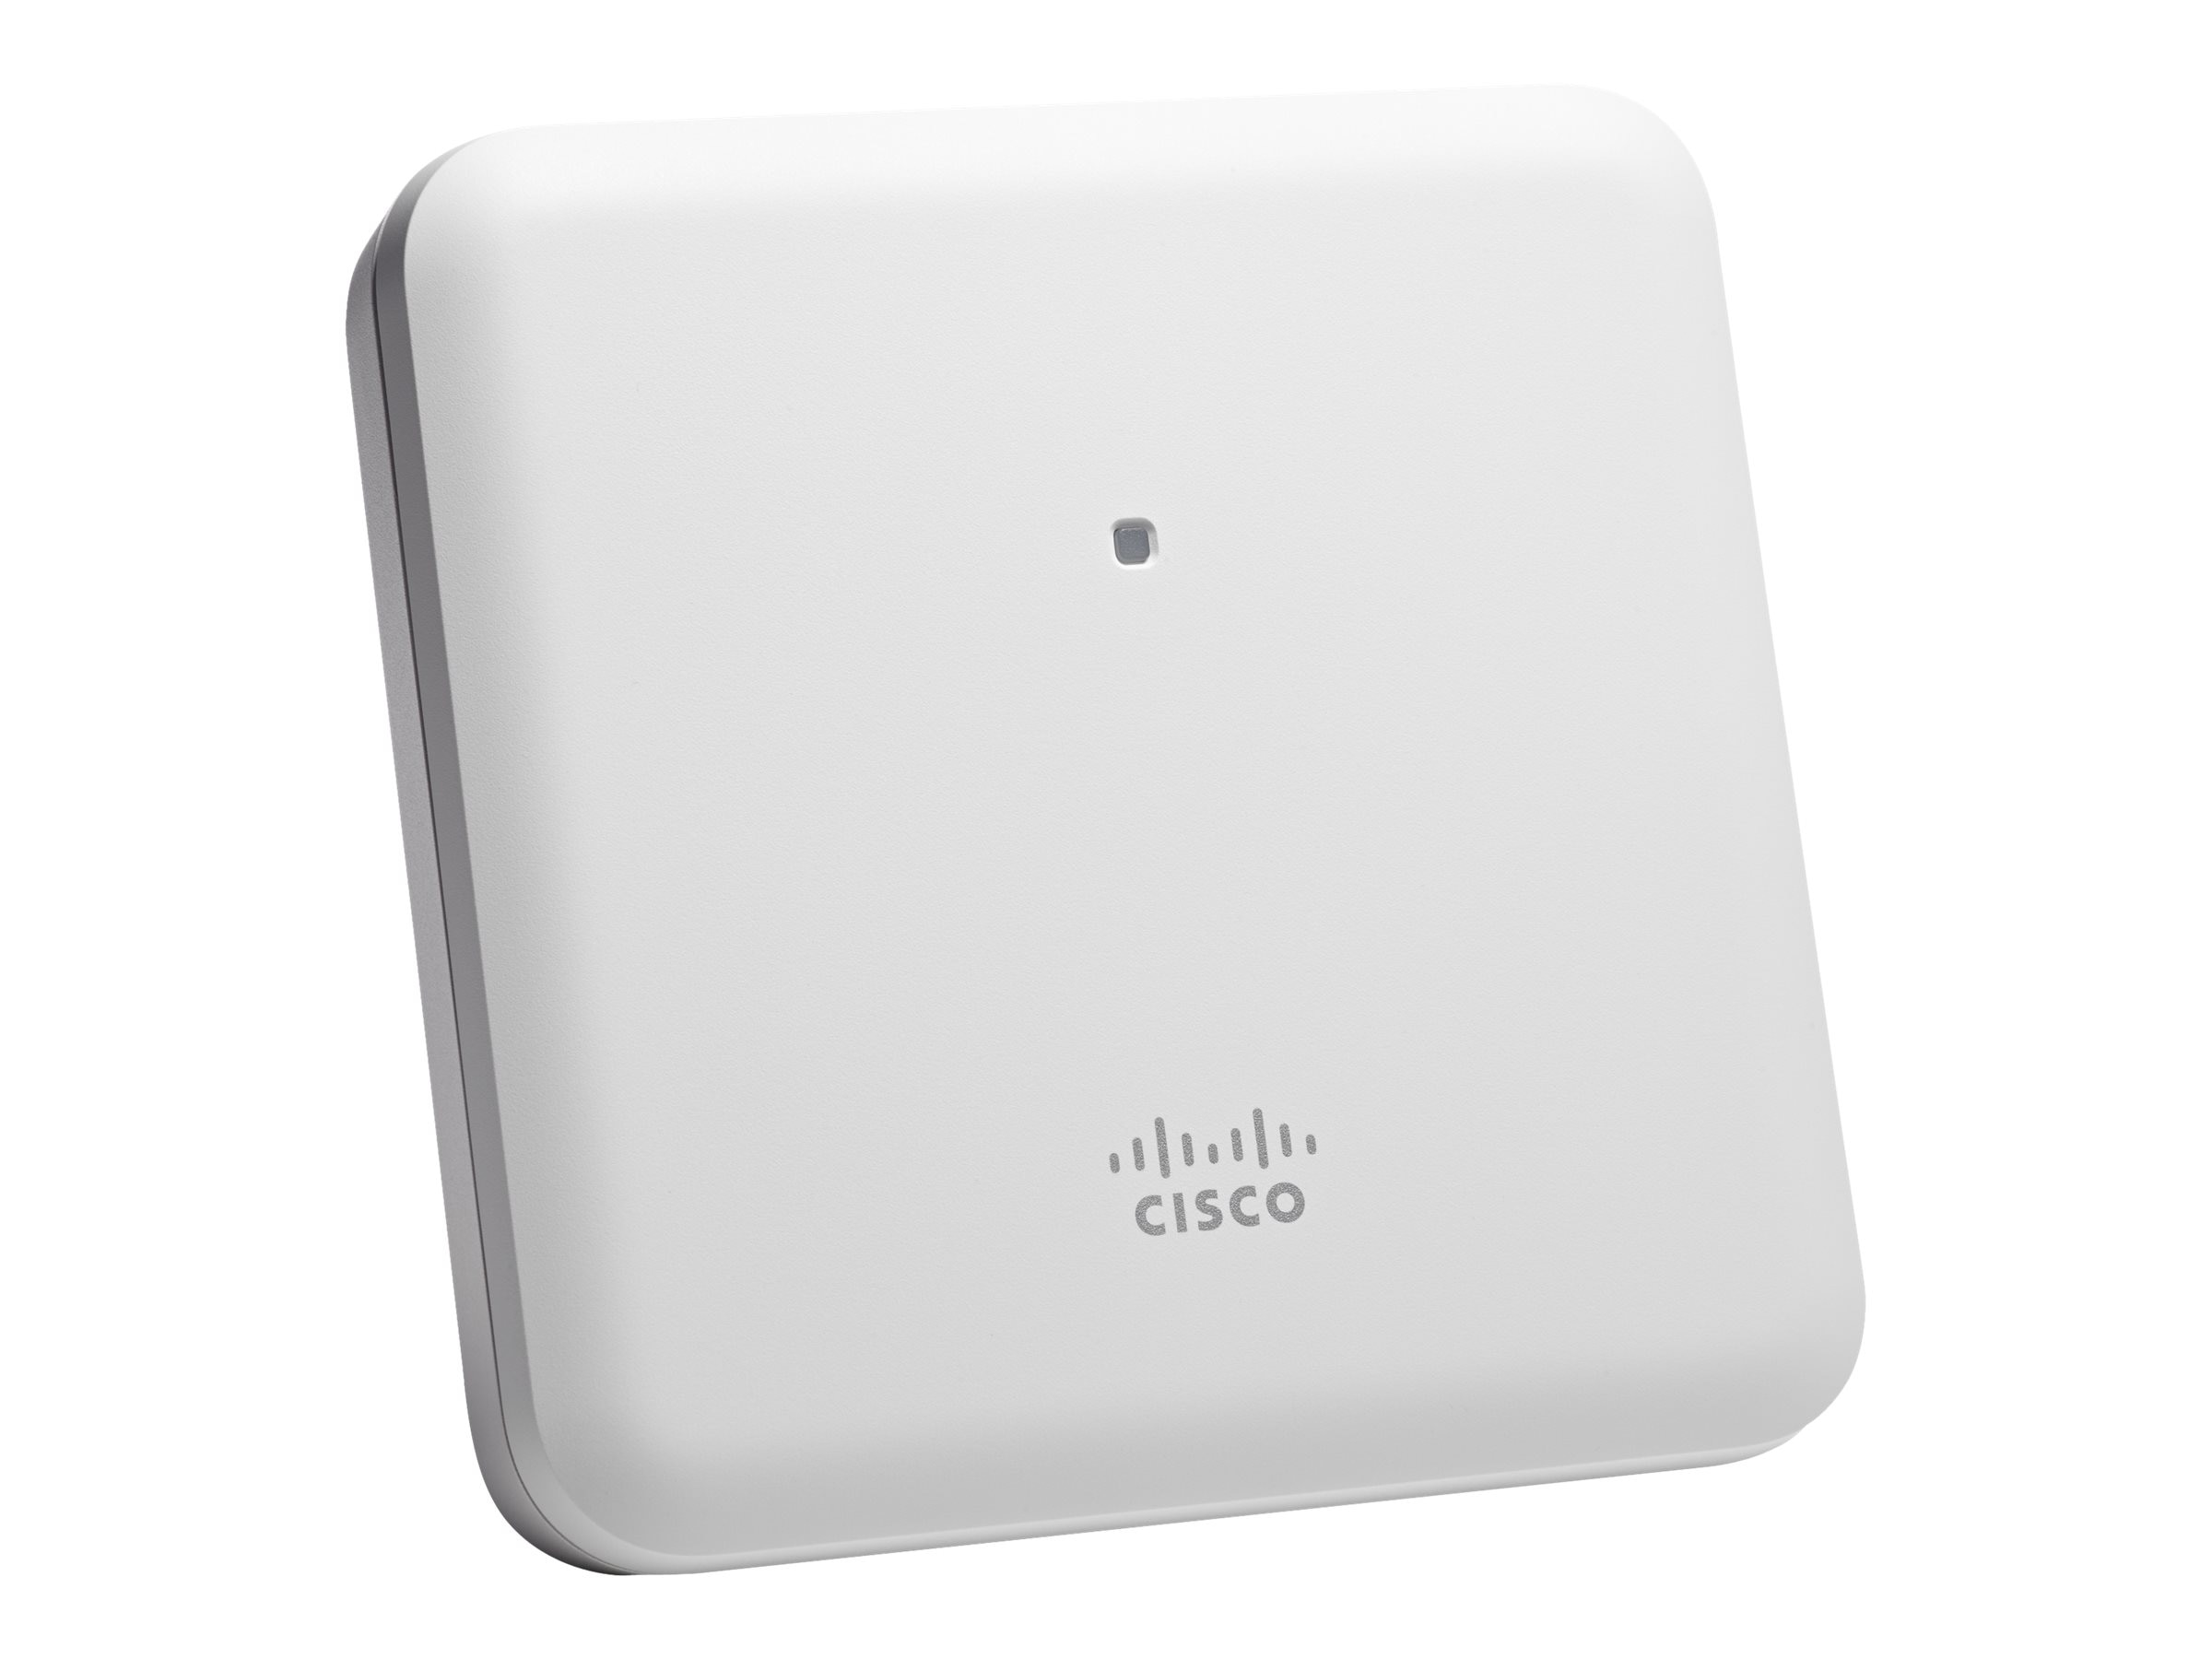 Cisco Aironet 1851i AP w 4x4:4SS, Int Ant, T Domain Configurable, AIR-AP1852I-T-K9C